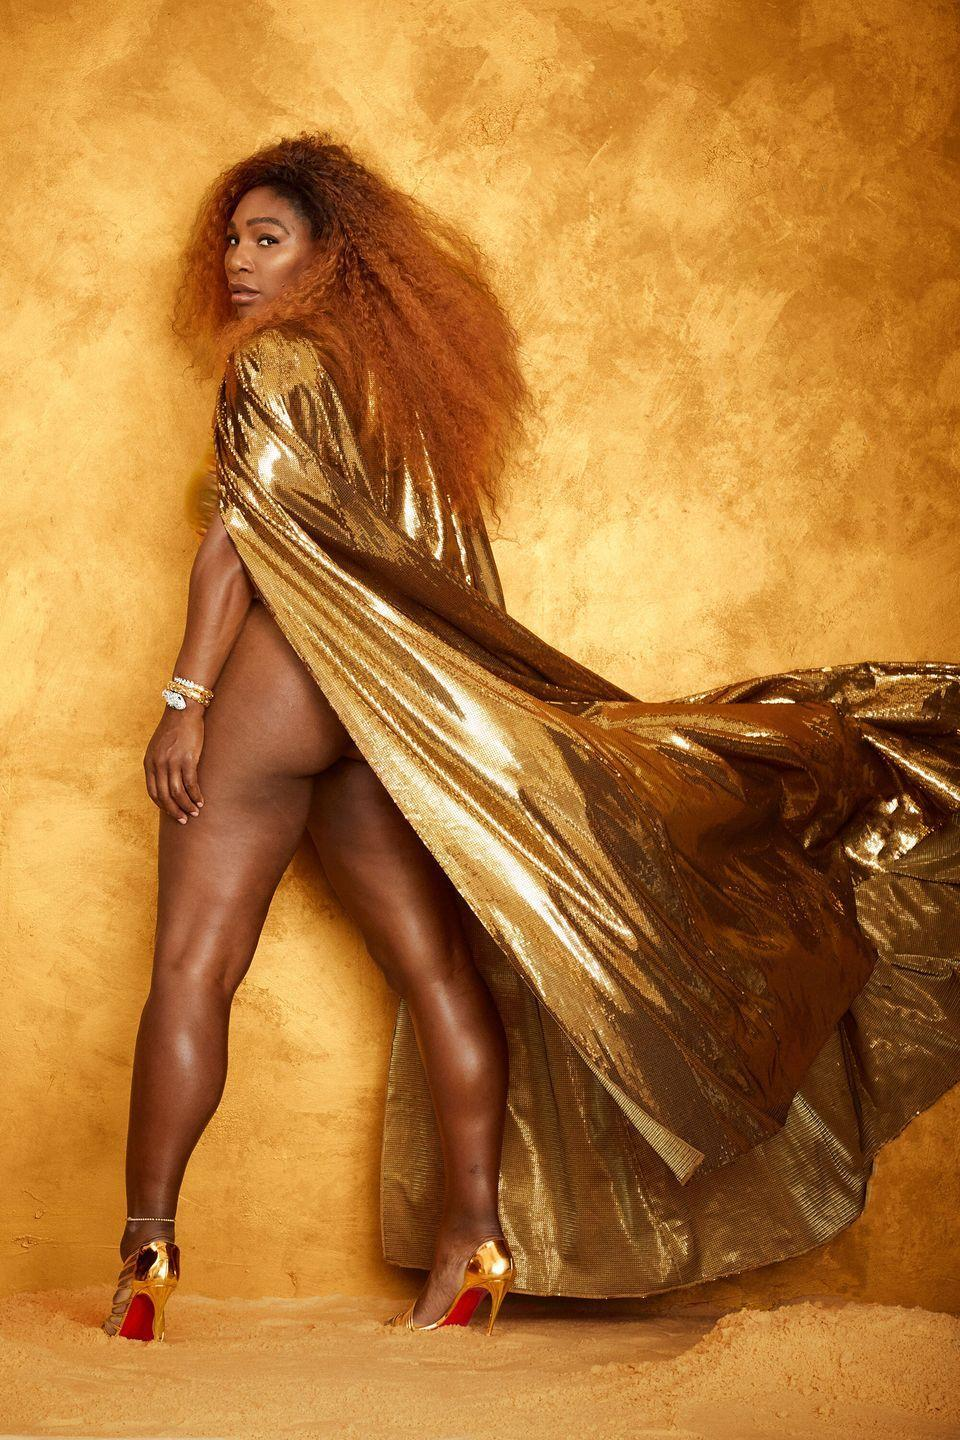 <p>Thanks to Megan Thee Stallion, music in 2020 was all about the body—the protruding parts, the curvy parts, and, yes, even the wet parts. Jewelry designers, too, focused on the birthday suit, celebrating the sensuality of the female form by offering gilded pieces that leave little to the imagination. </p><p>Chloé and Pamela Card, for instance, placed mini Venus figurines on long chains. Sculptor Anissa Kermiche reimagined her celebrated vases of the female body onto pendants. Tiffany & Co. reissued its iconic bone cuffs, which were designed by Elsa Peretti. And Danielle Gerber bared bosoms unabashedly. </p><p>Now, after months of being certified freaks, seven days a week, we're trumpeting the same carefree mindset into 2021. And we can think of no better way to shake our body-ody-odies virtually—and hopefully, in the near future, IRL—than with the selection below. </p>